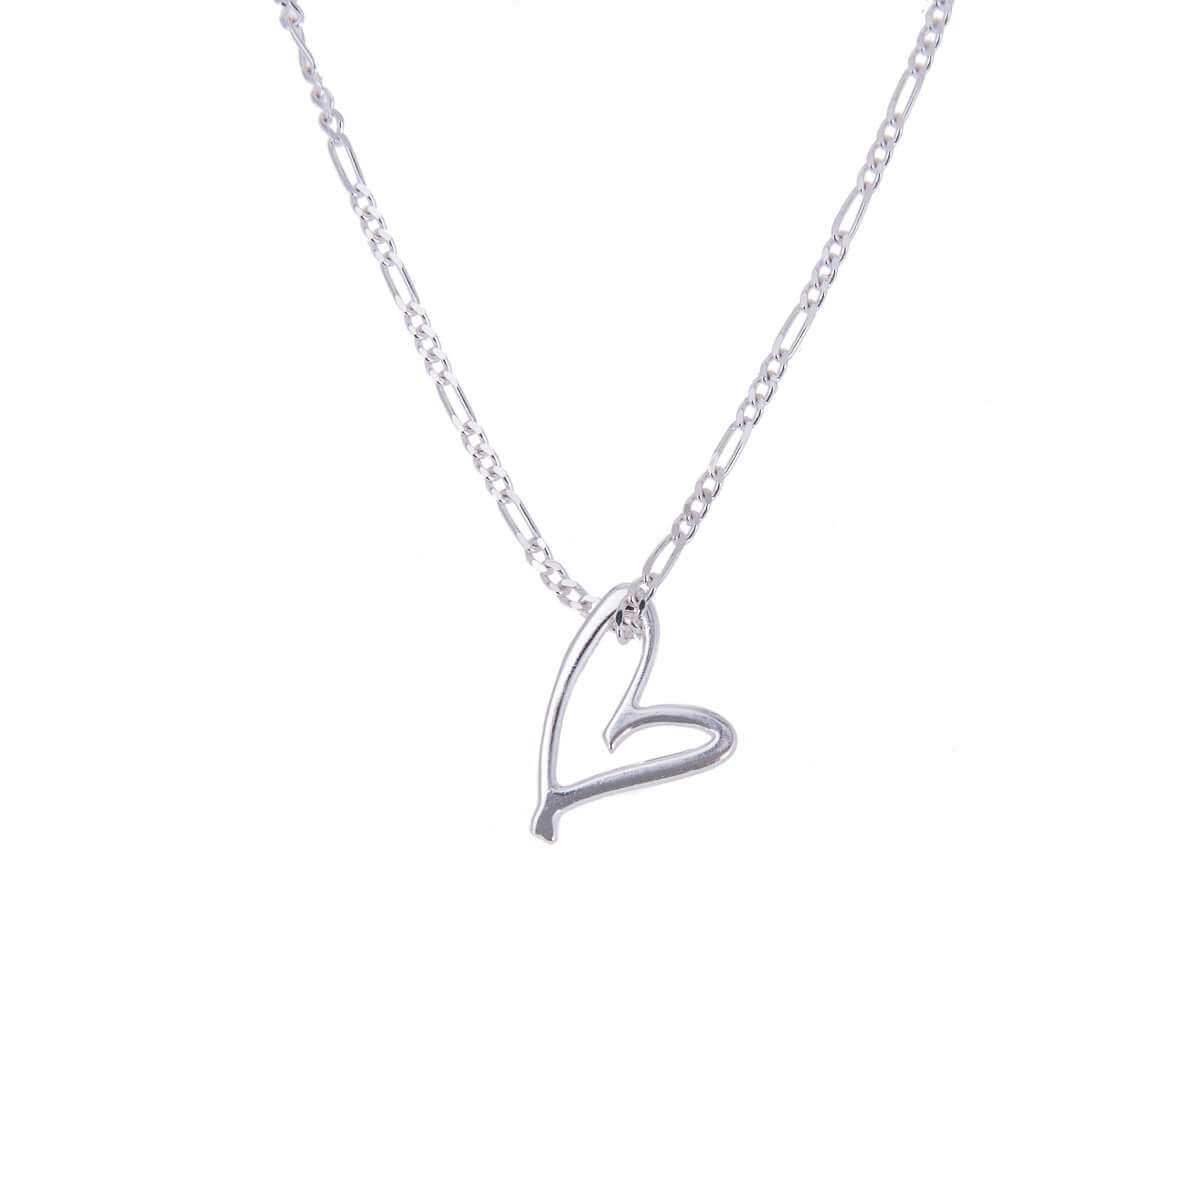 Sterling Silver Stylised Open Heart Necklace 14 - 32 Inches